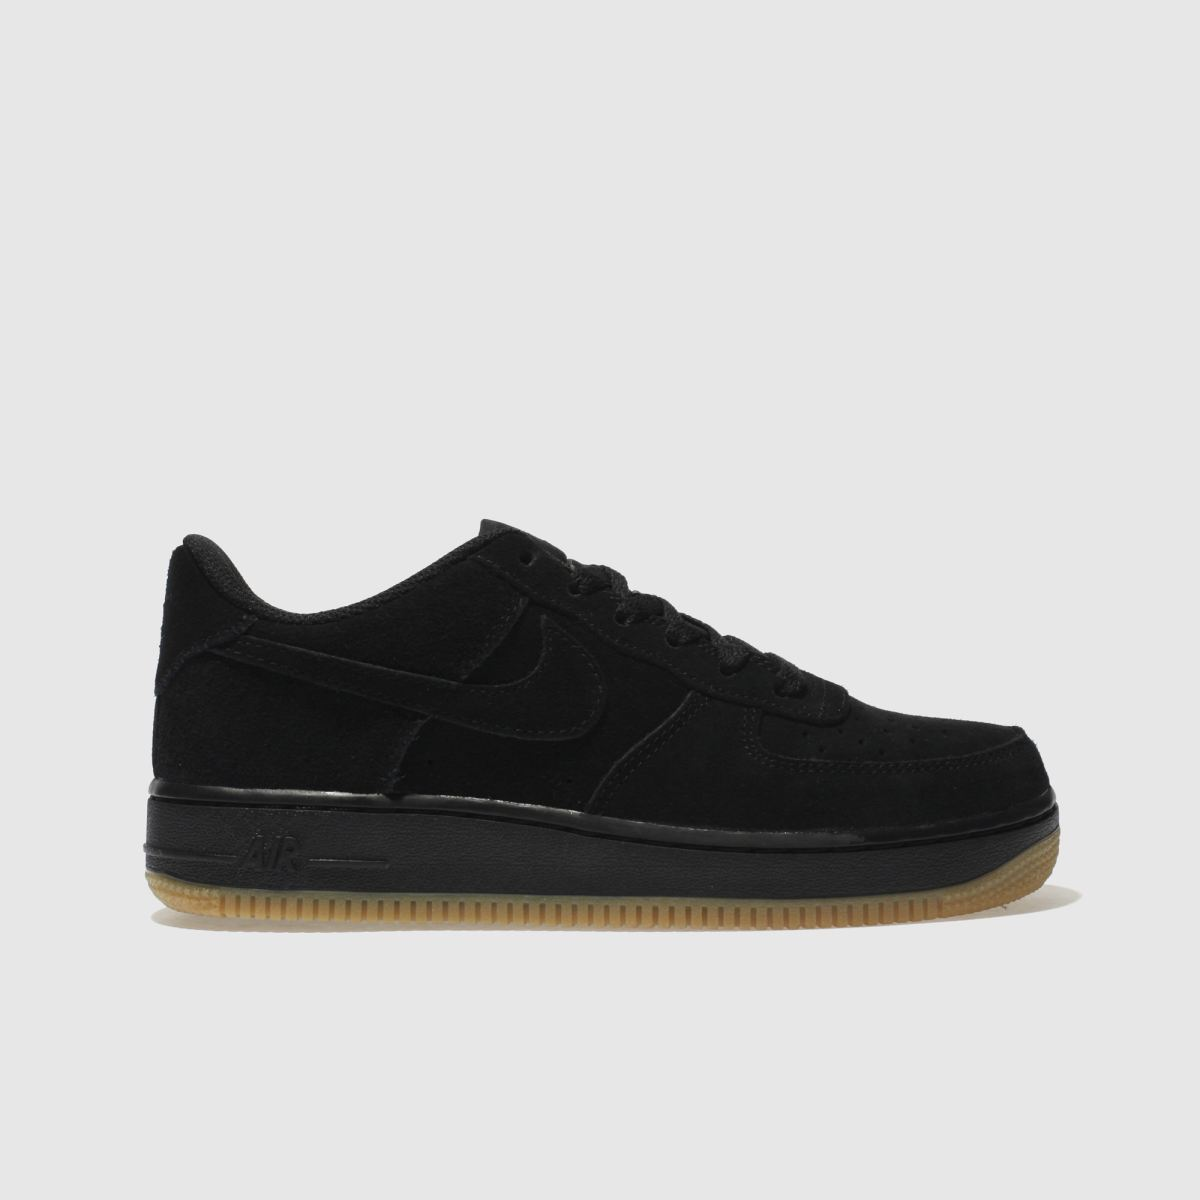 Nike Black Air Force 1 Premium Unisex Youth Youth